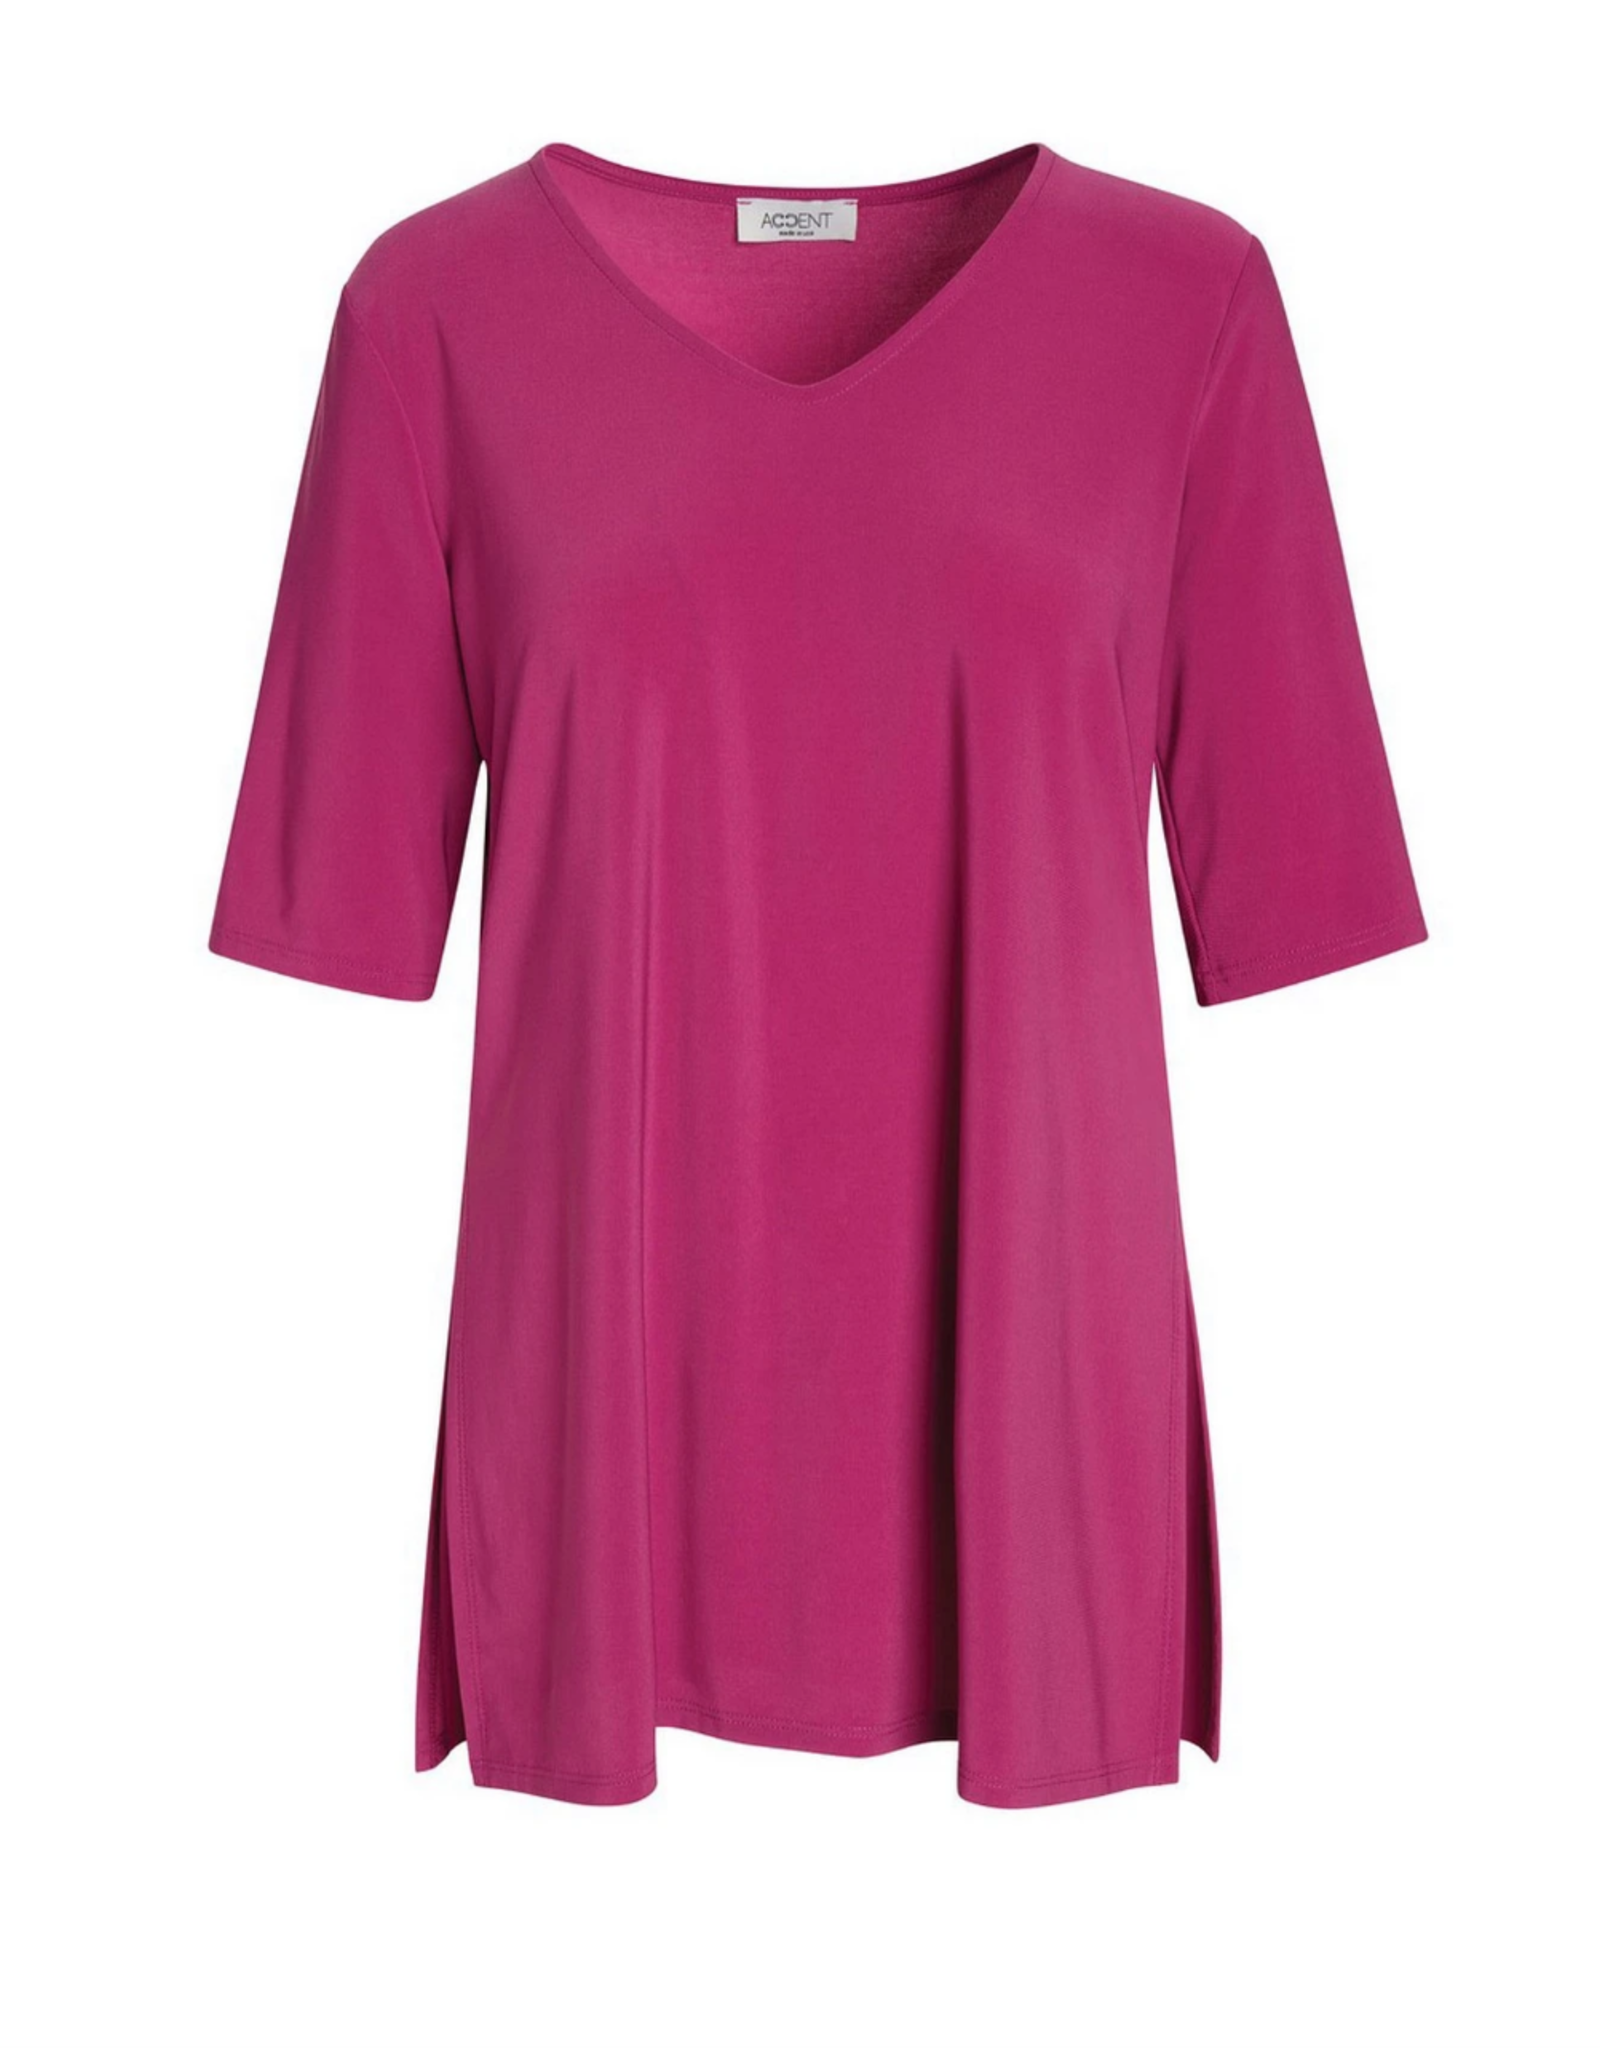 Accent - Magic Shirt Magenta